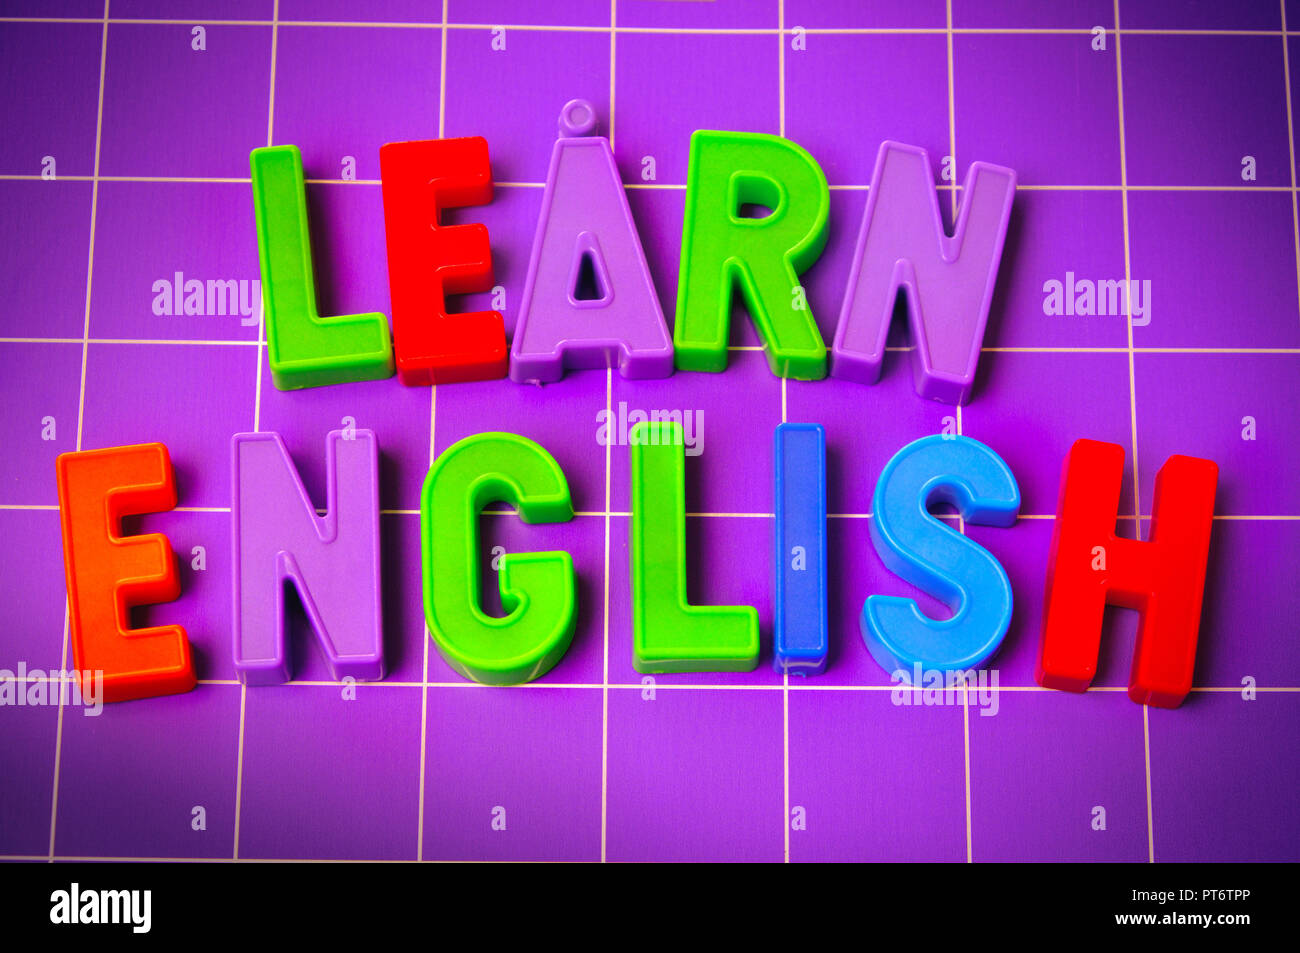 learn english language alphabet on magnets letters - Stock Image